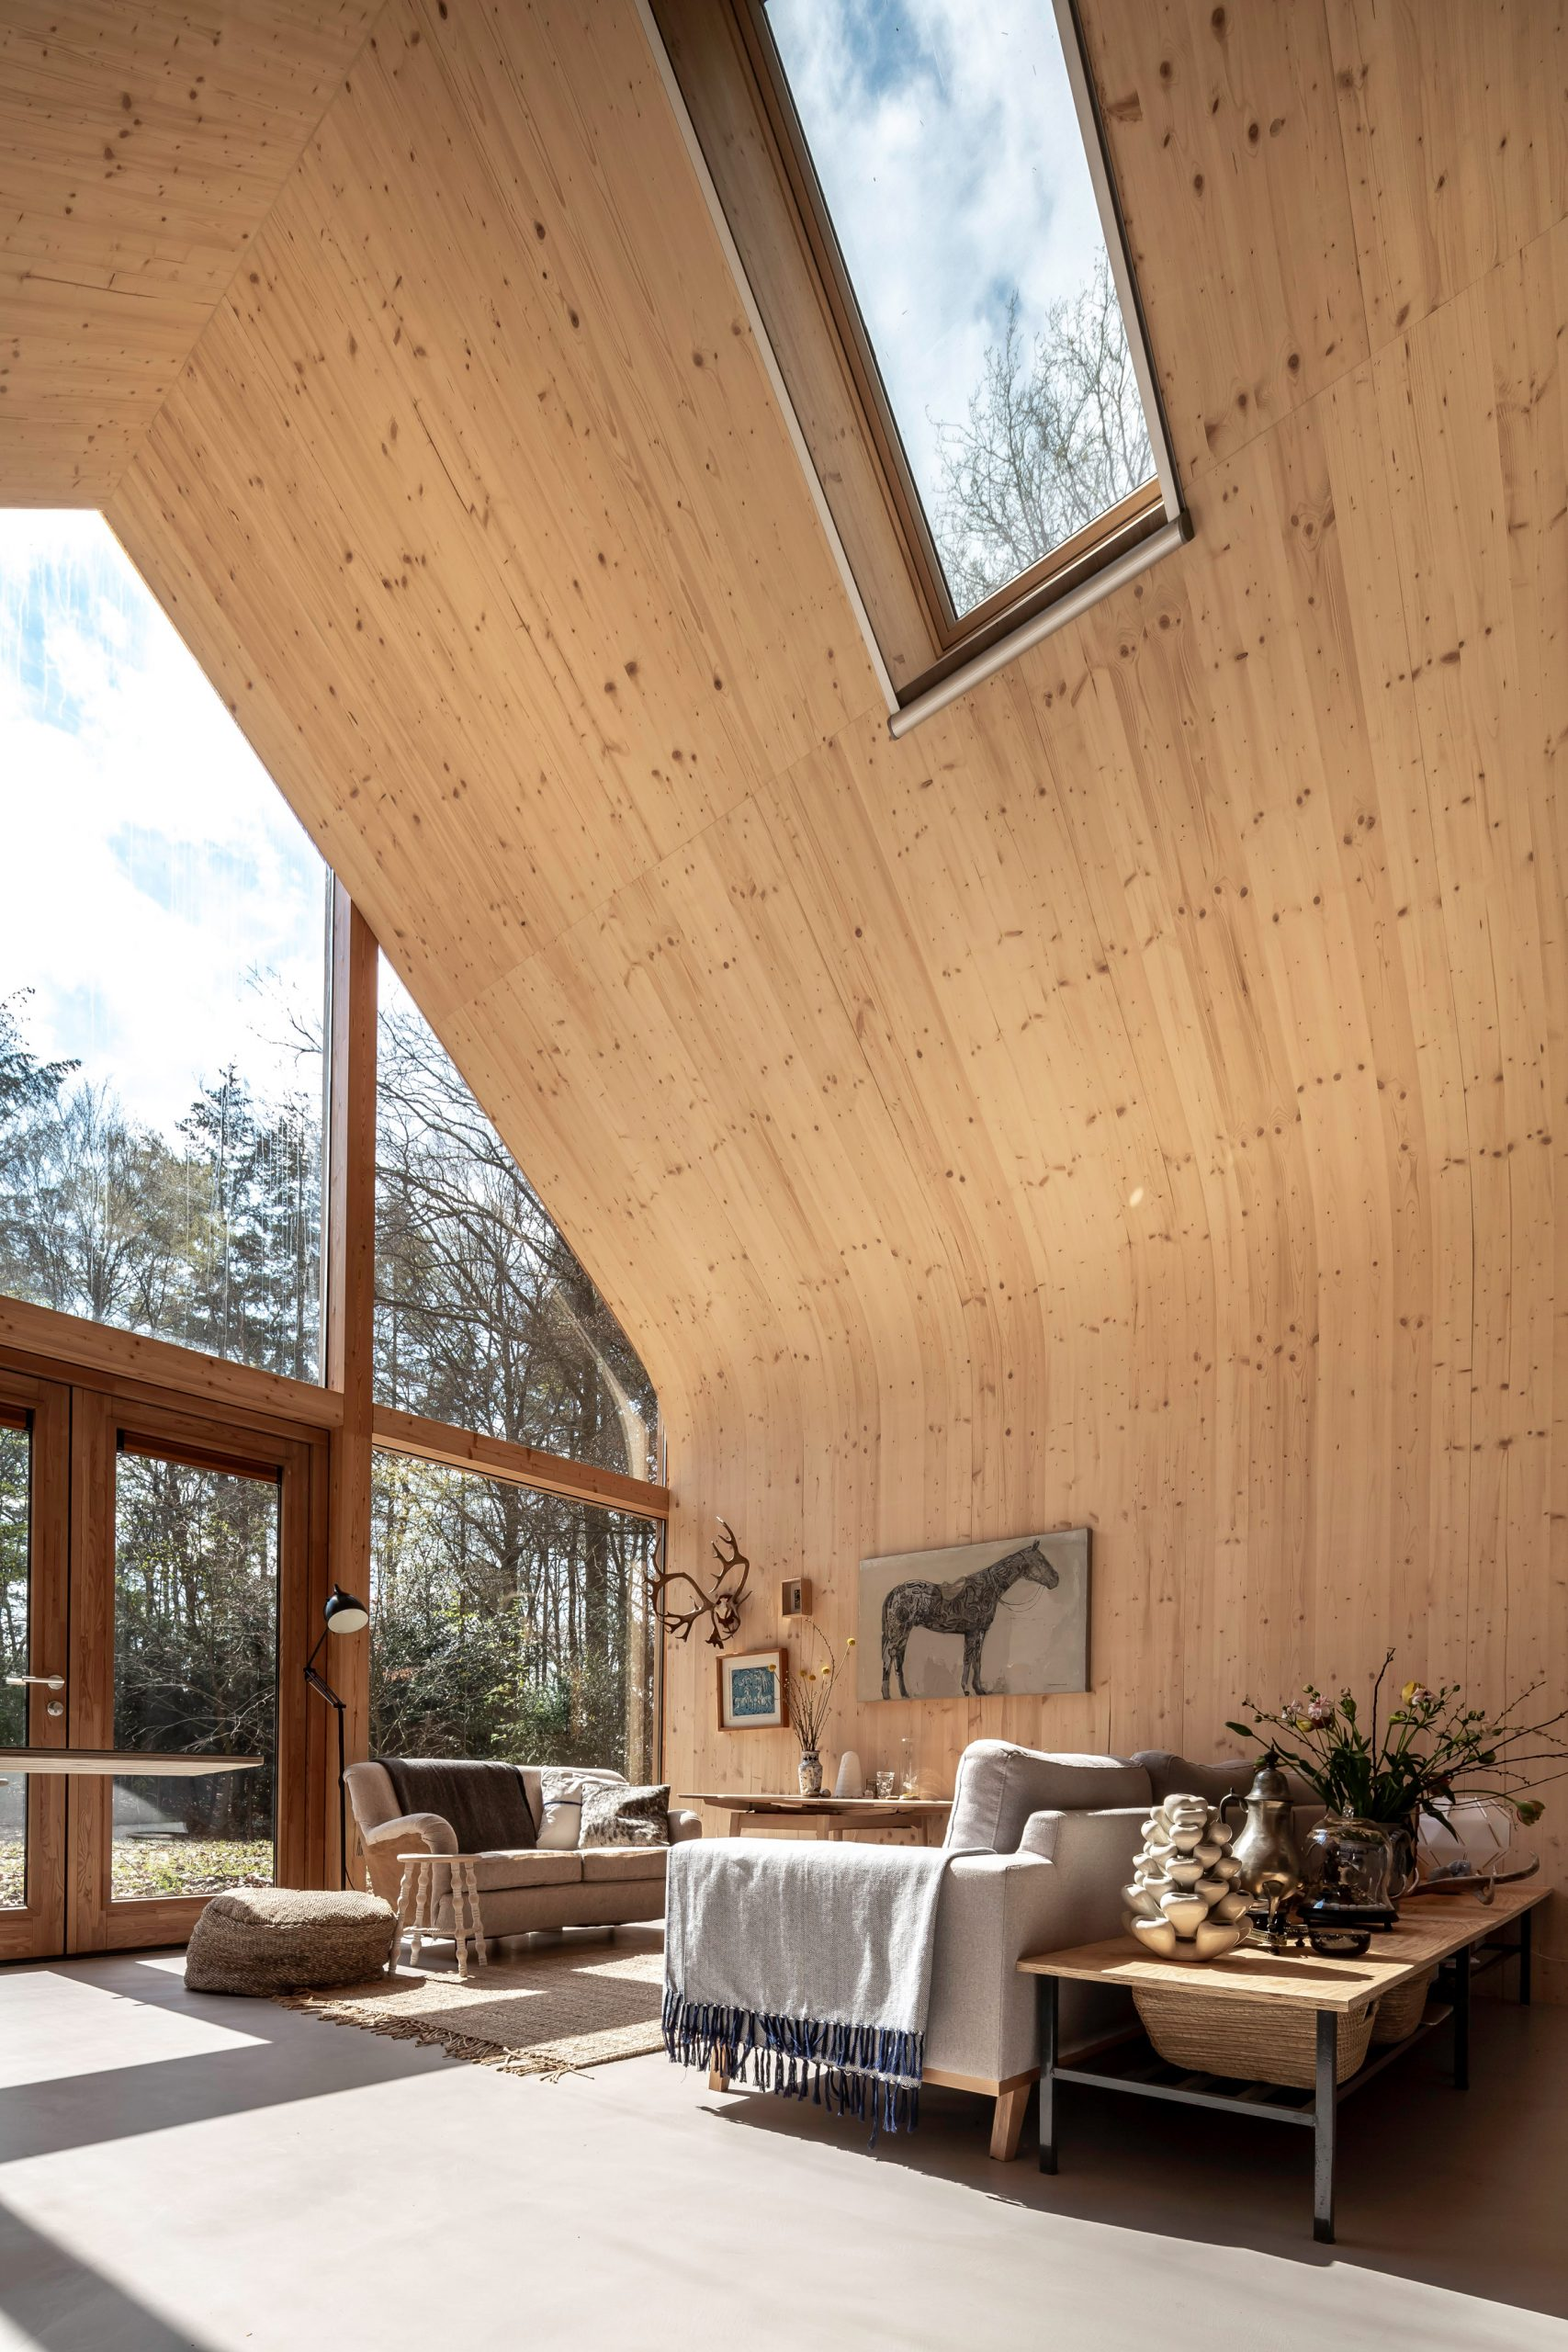 The curved walls of the Indigo cabin